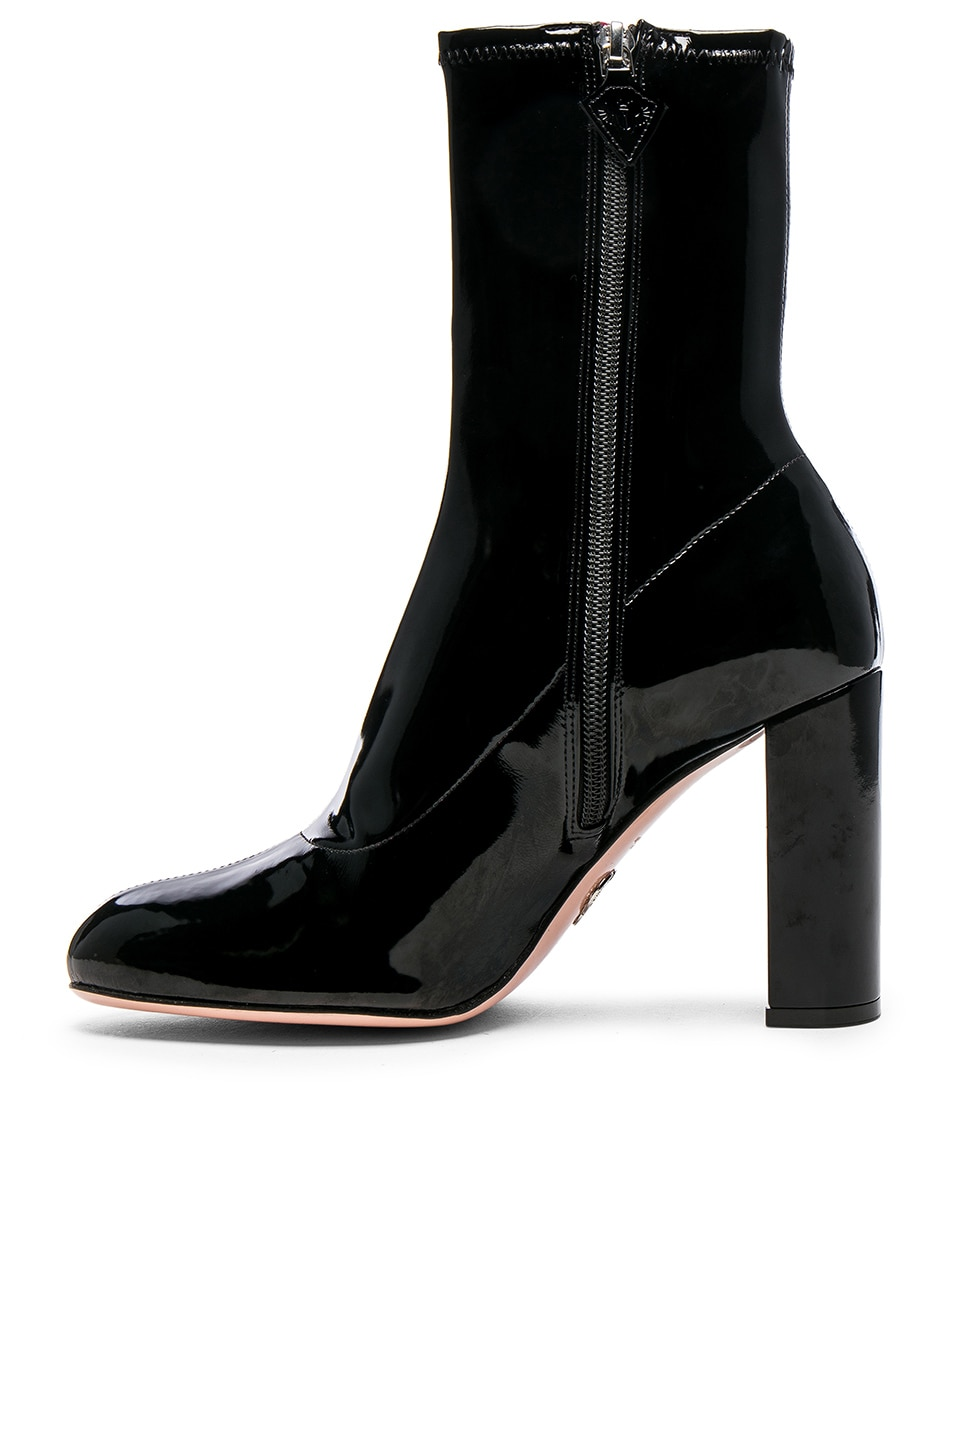 Image 5 of Oscar Tiye Patent Leather Giorgia Boots in Black Latex